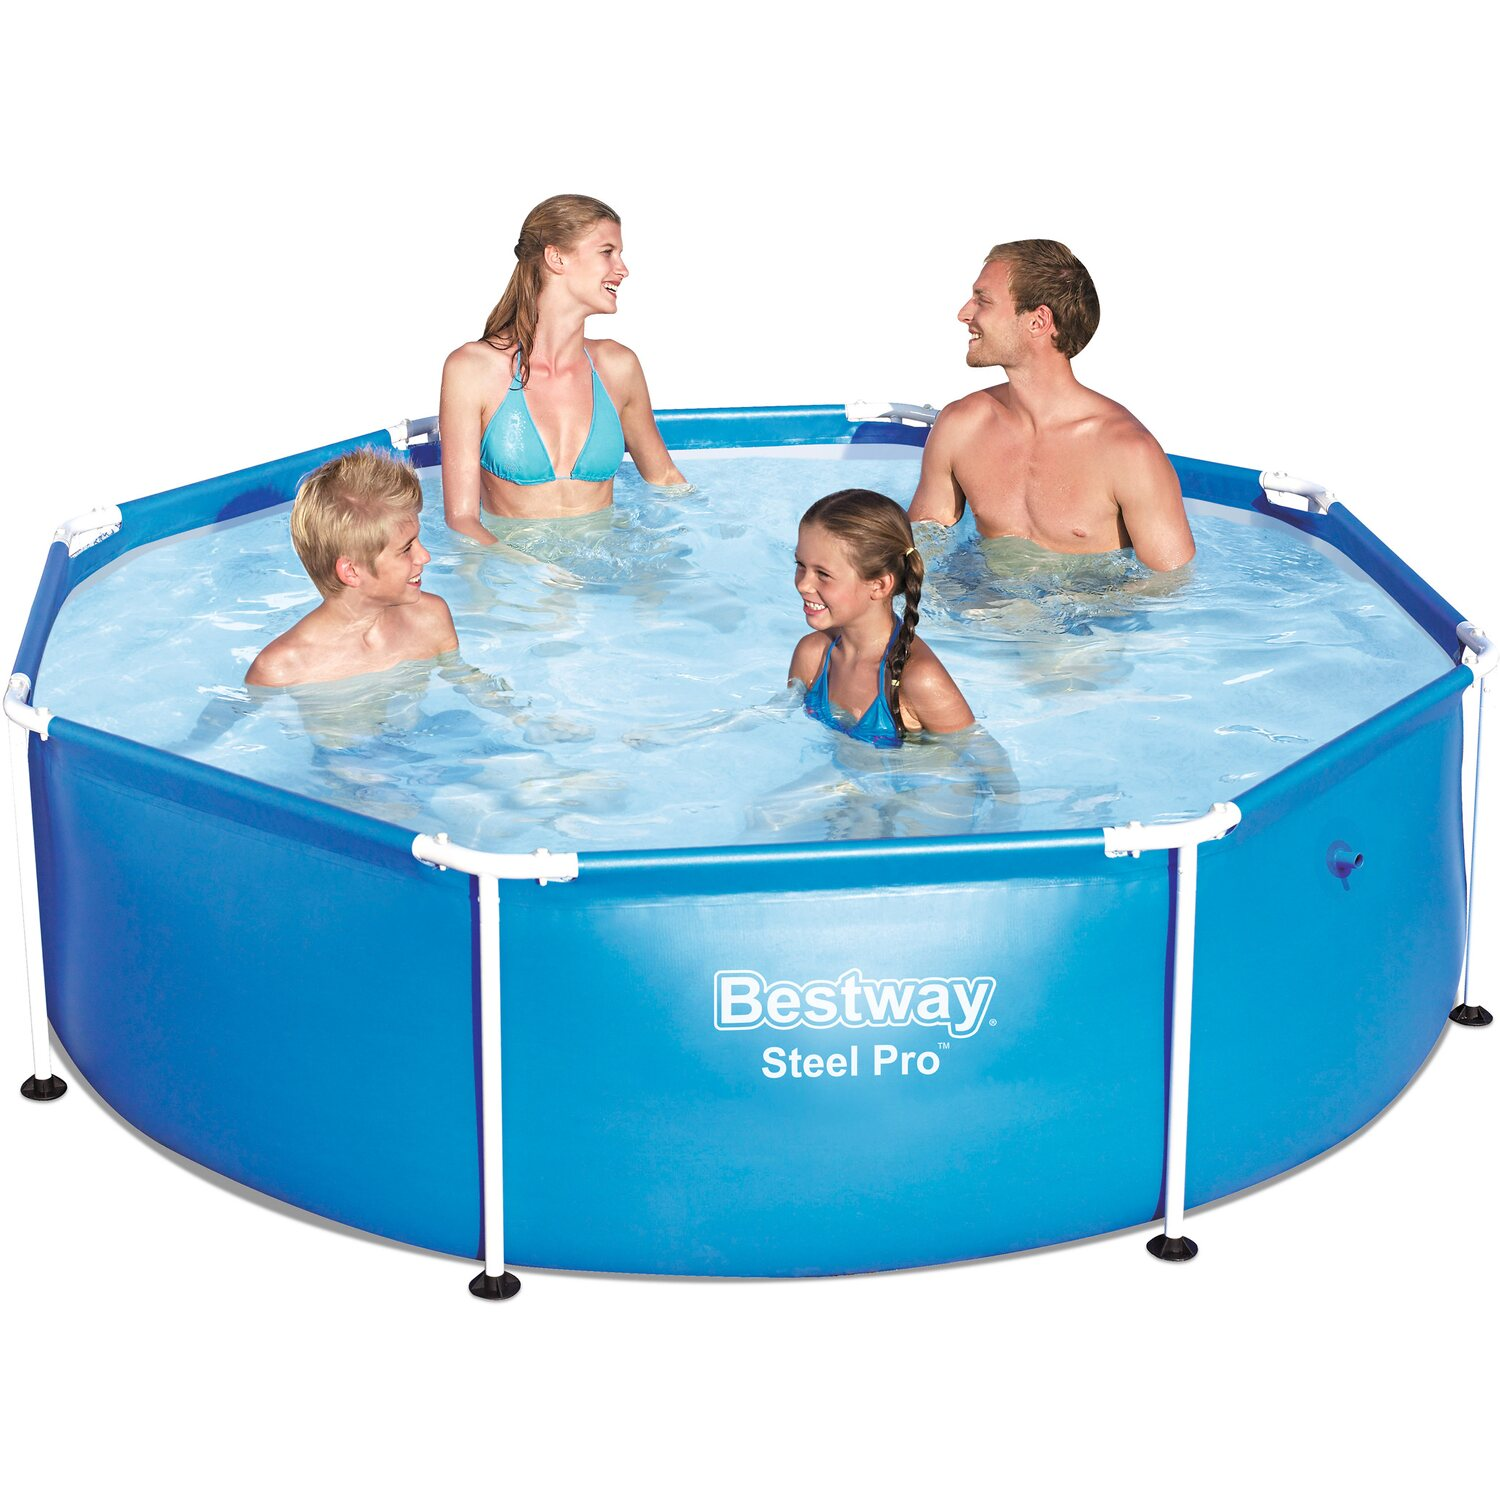 Bestway pool steel pro frame 244 cm x 61 cm kaufen bei obi for Bestway pool bei obi